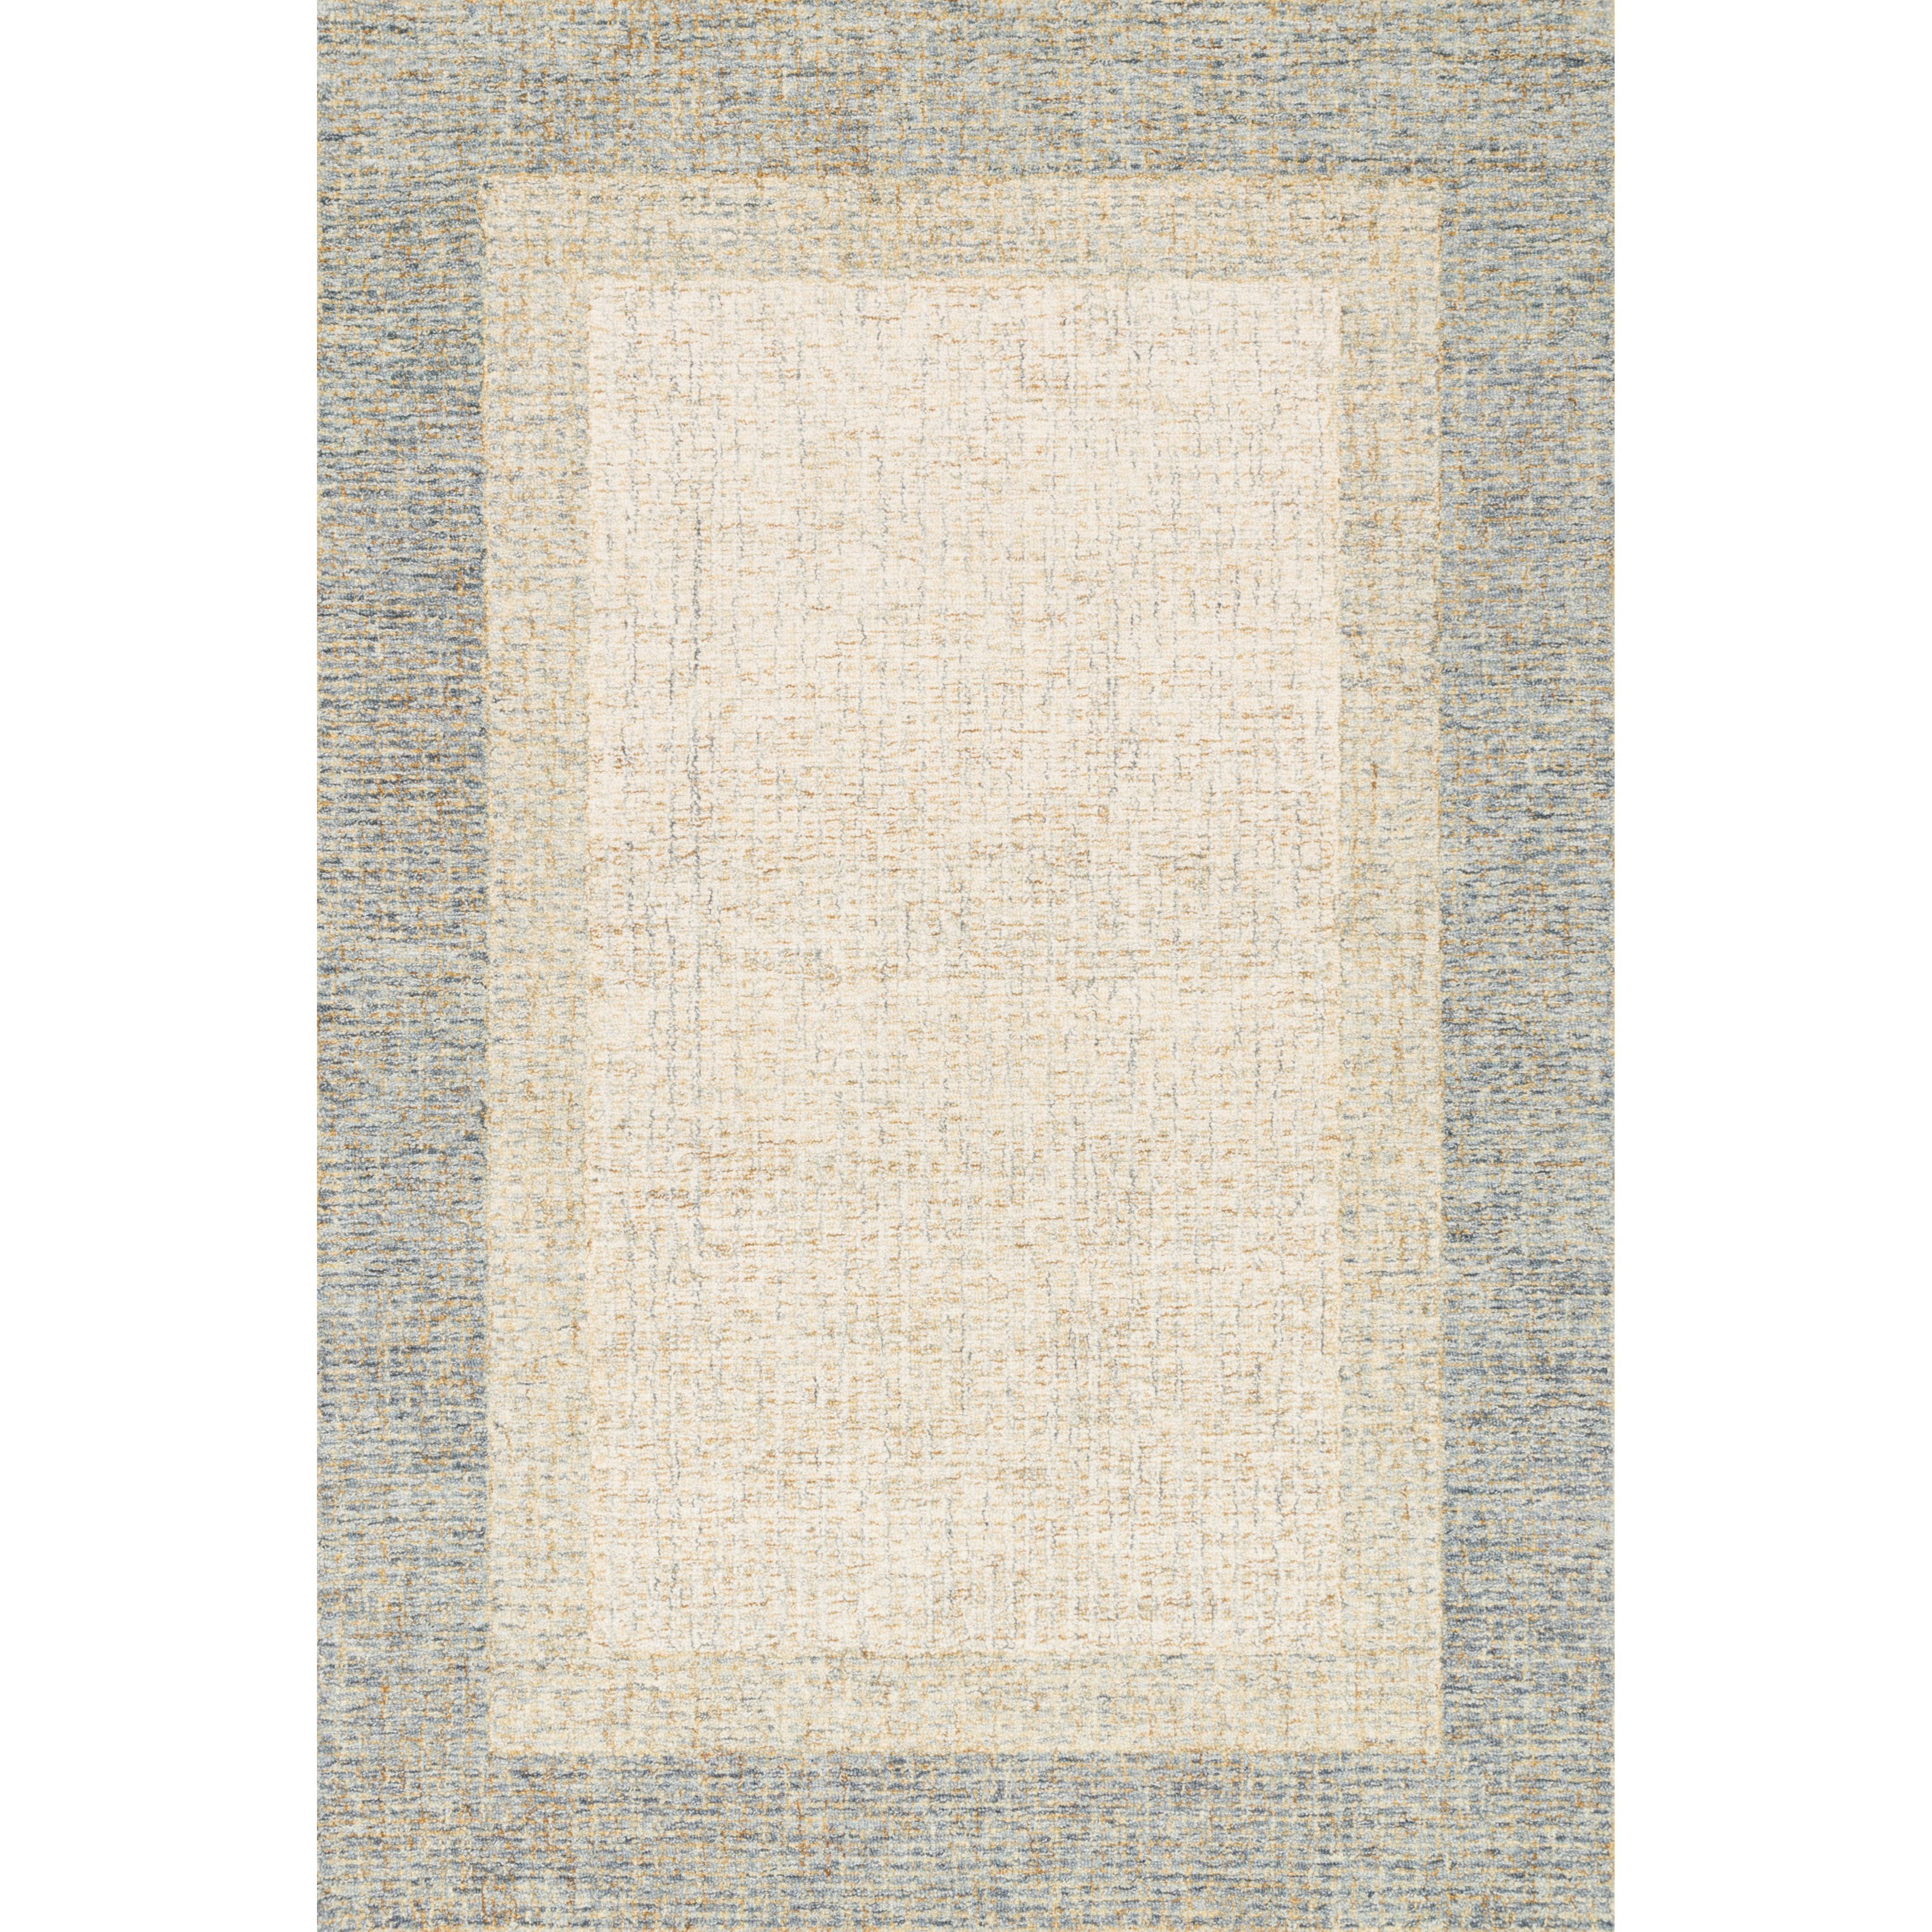 """Rosina 5'0"""" x 7'6"""" Sand Rug by Loloi Rugs at Virginia Furniture Market"""